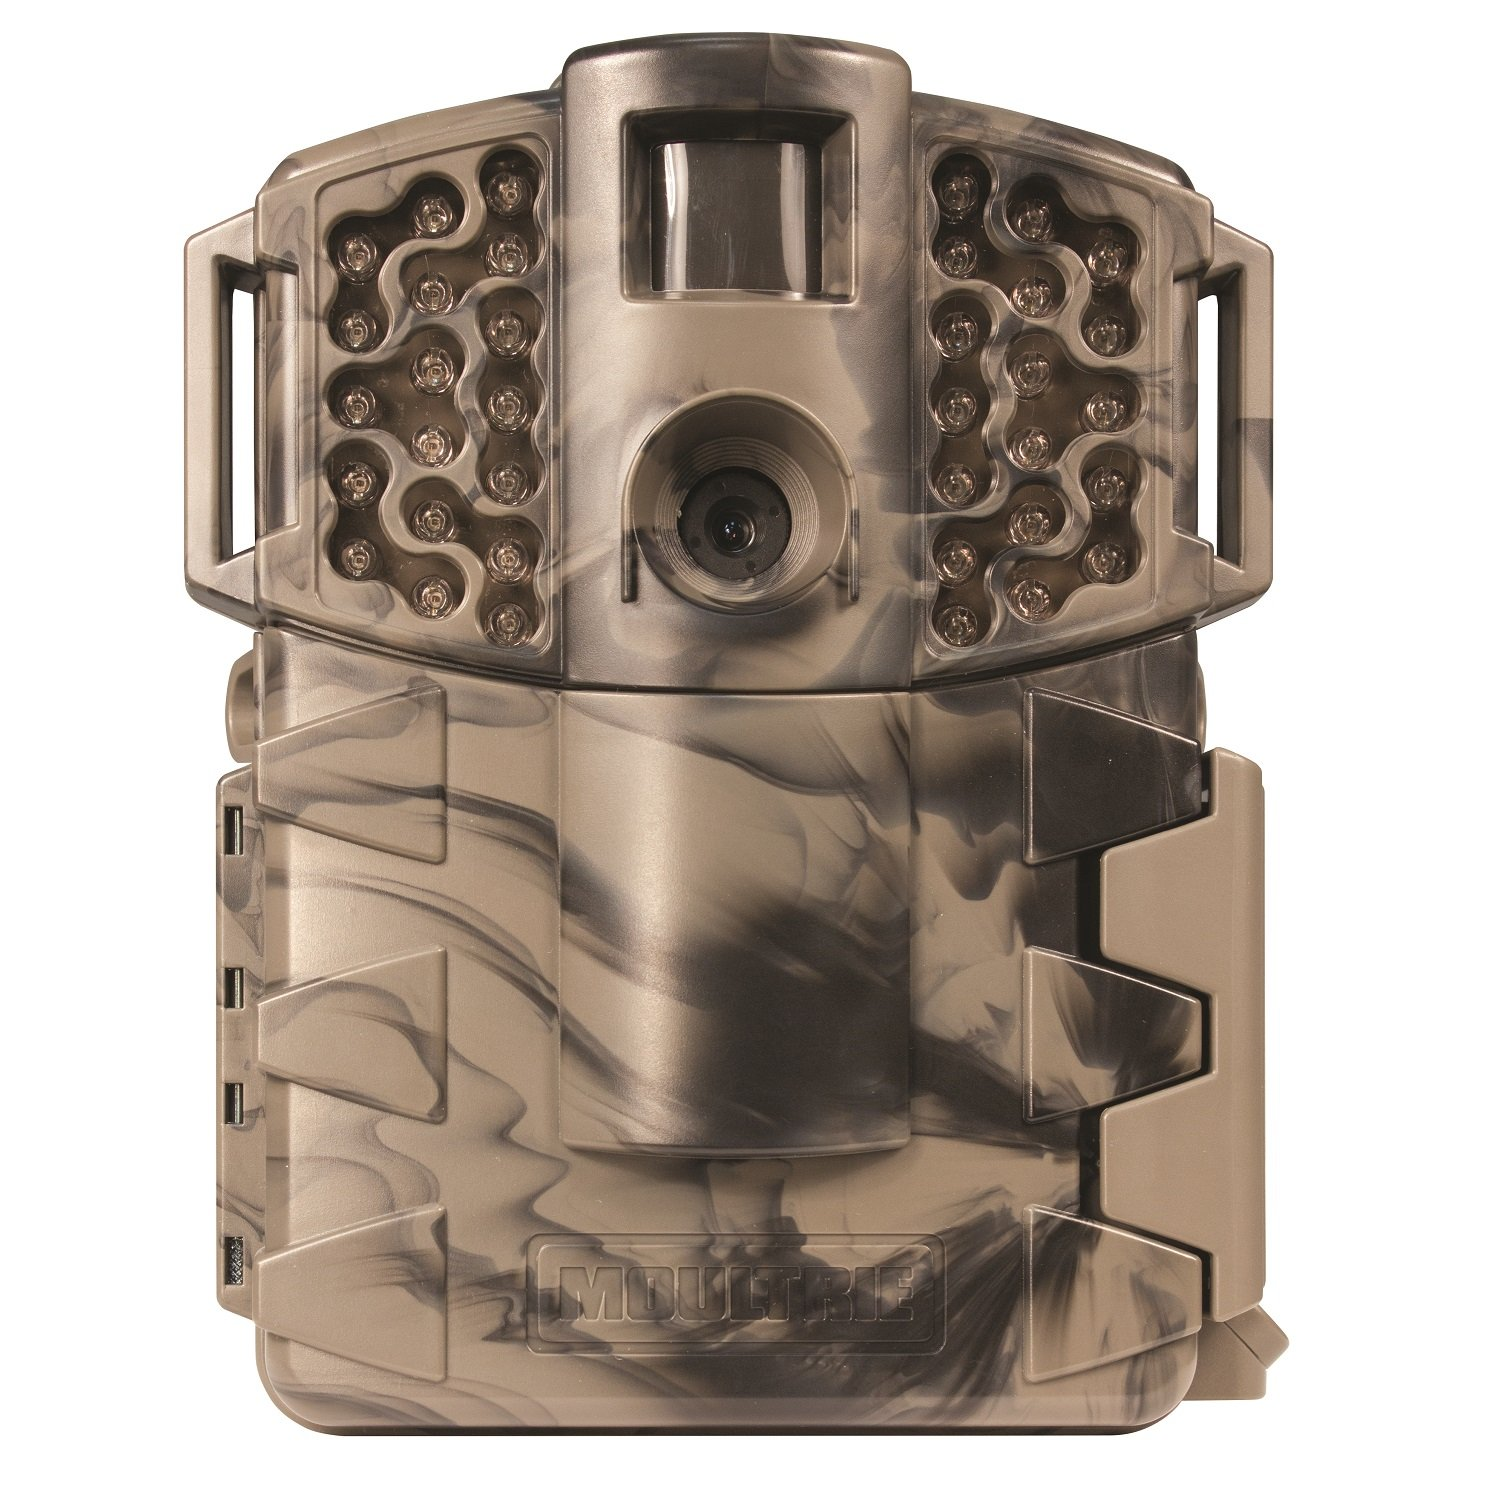 Top 10 Best Scouting Trail Cameras Buying Guide 2016-2017 on Flipboard